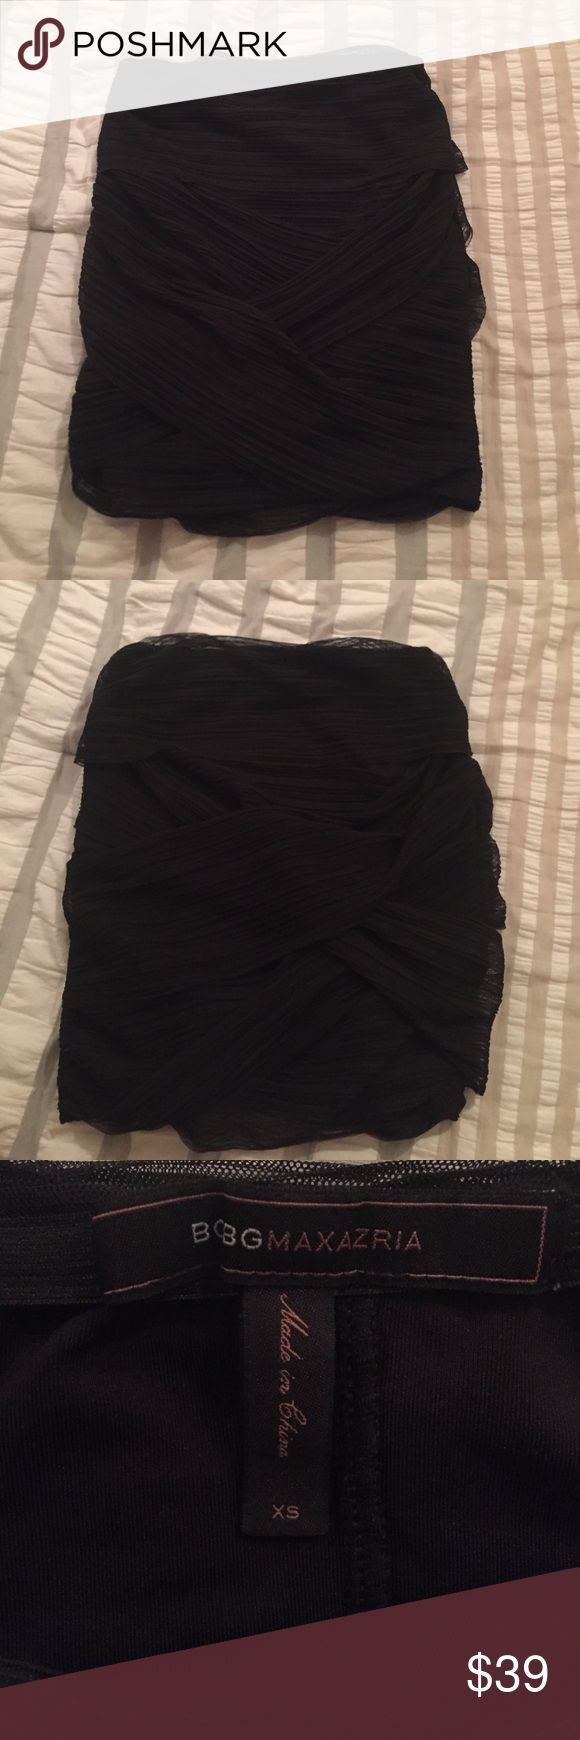 DONATING SOON BCBG black mesh bandeau skirt Black mesh bandeau skirt in very good condition. Size XS. BCBG. BCBG Skirts Mini